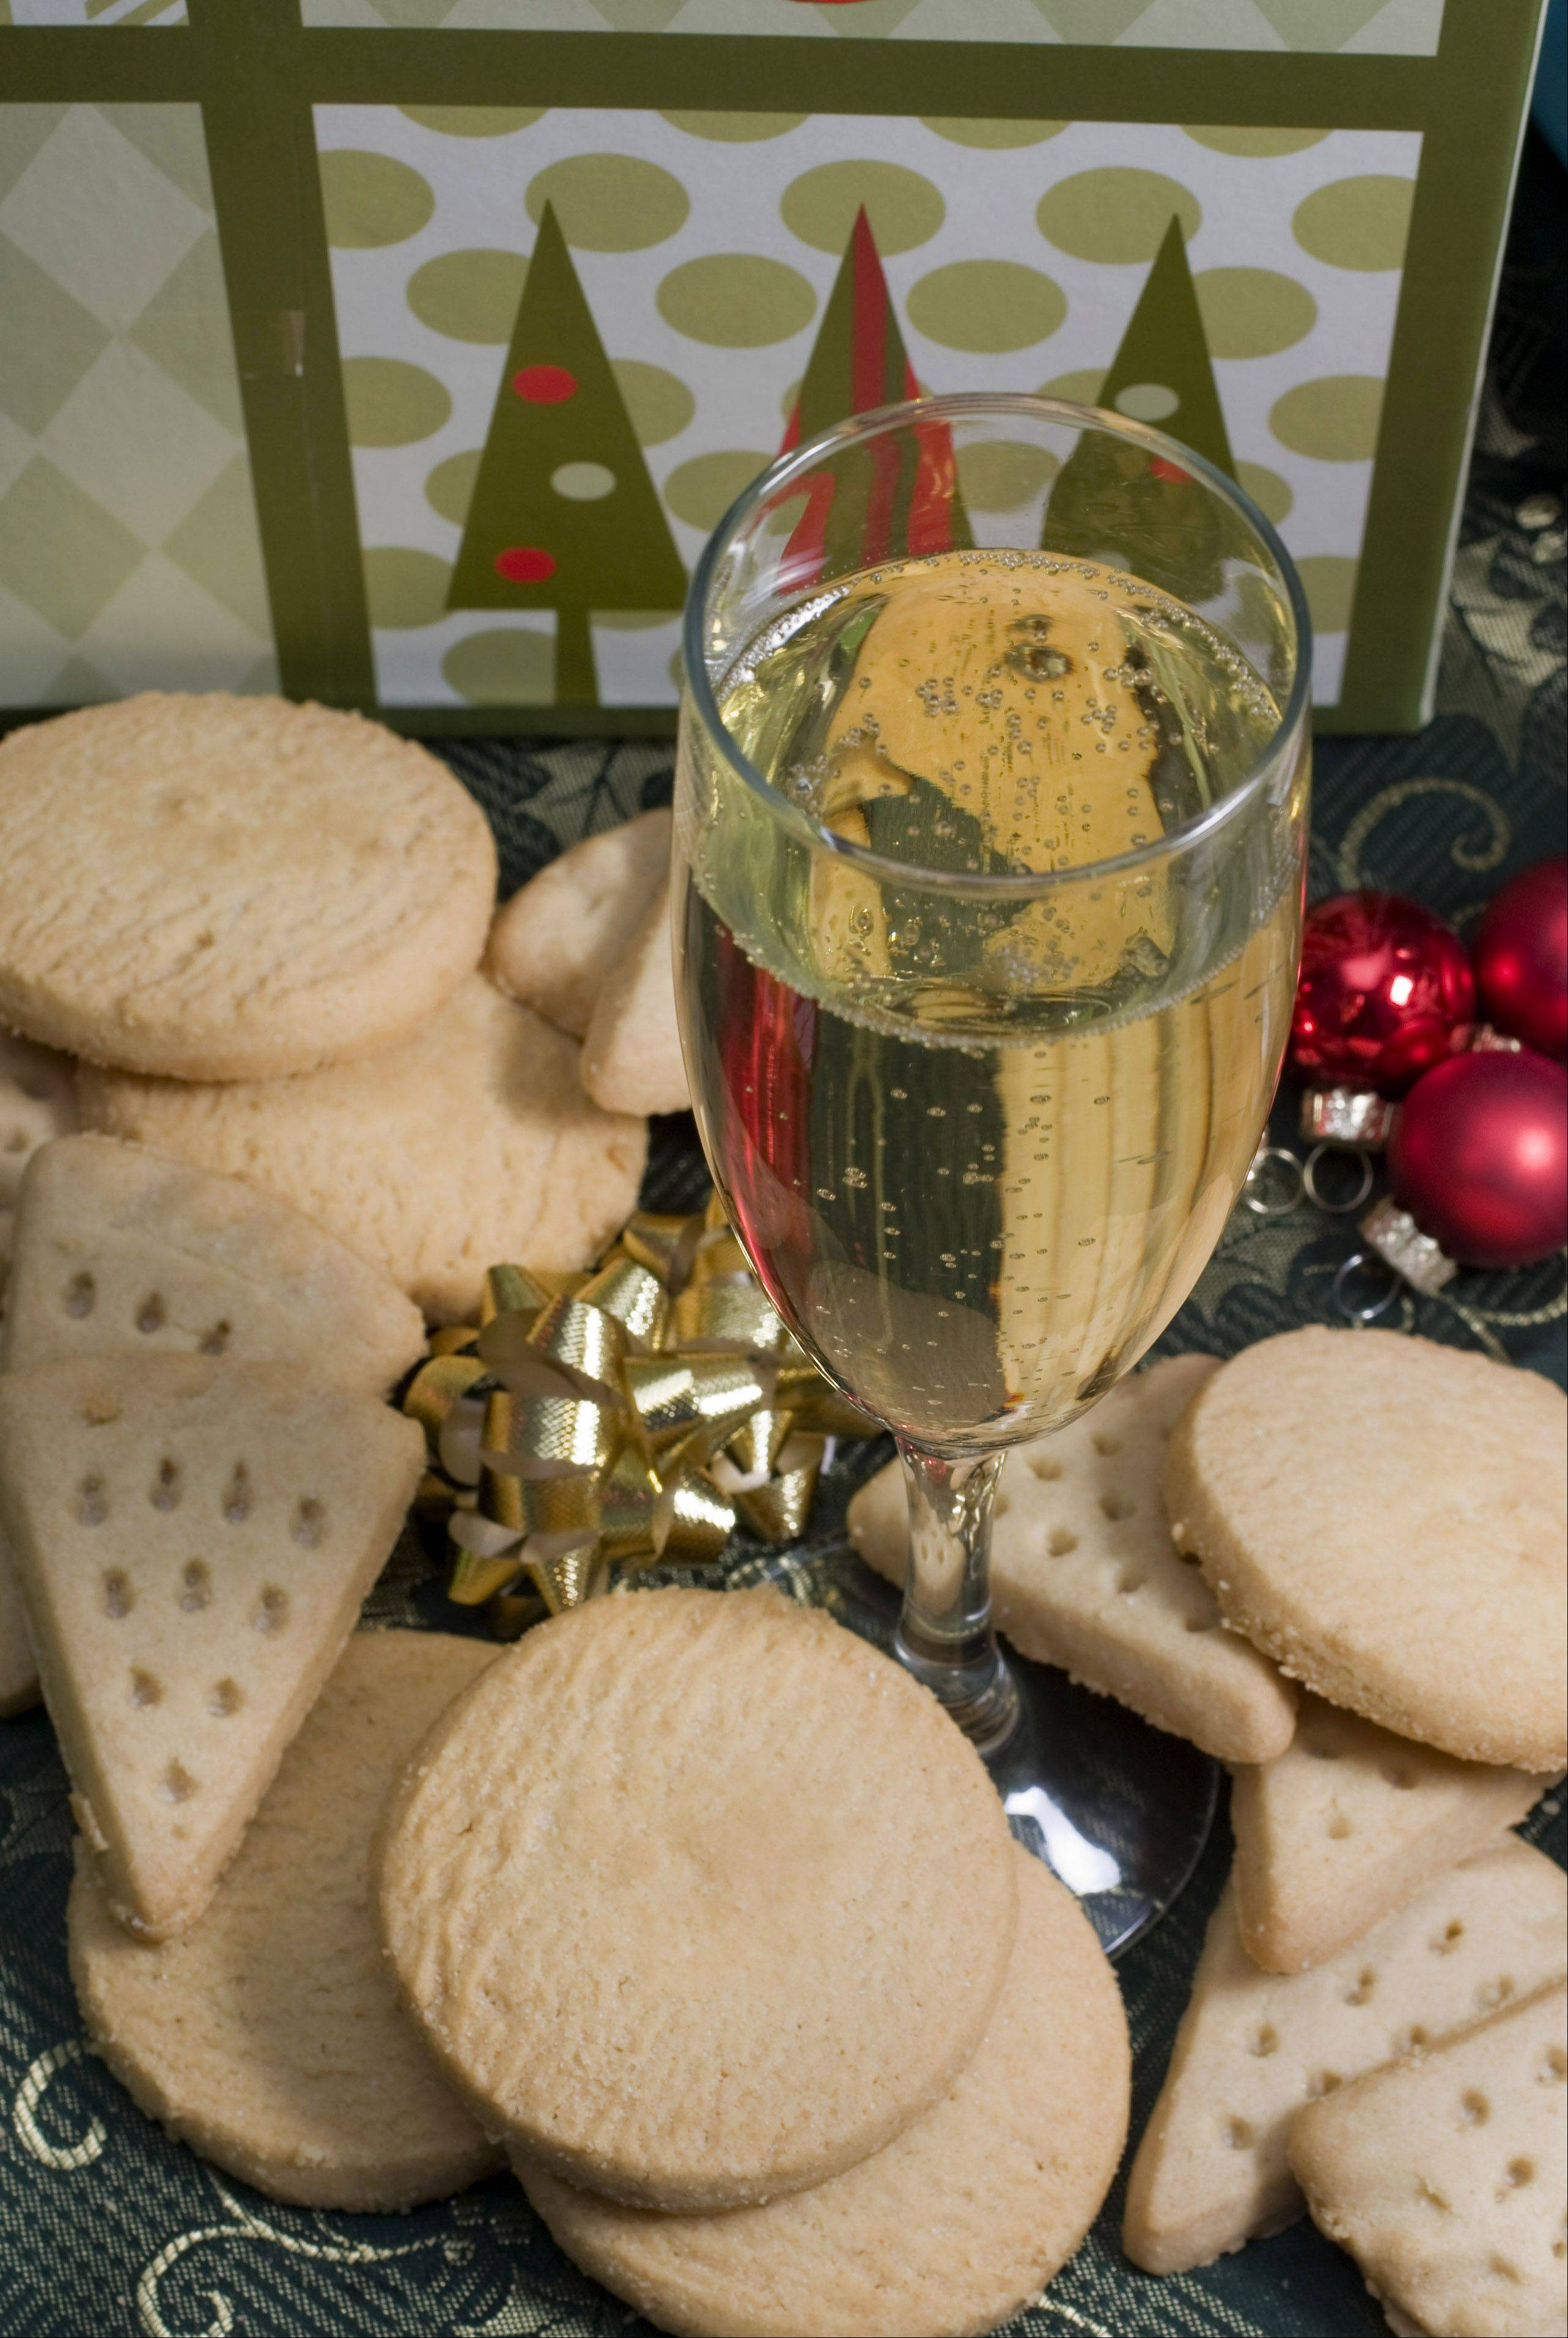 December is a popular month for sparkling wine.